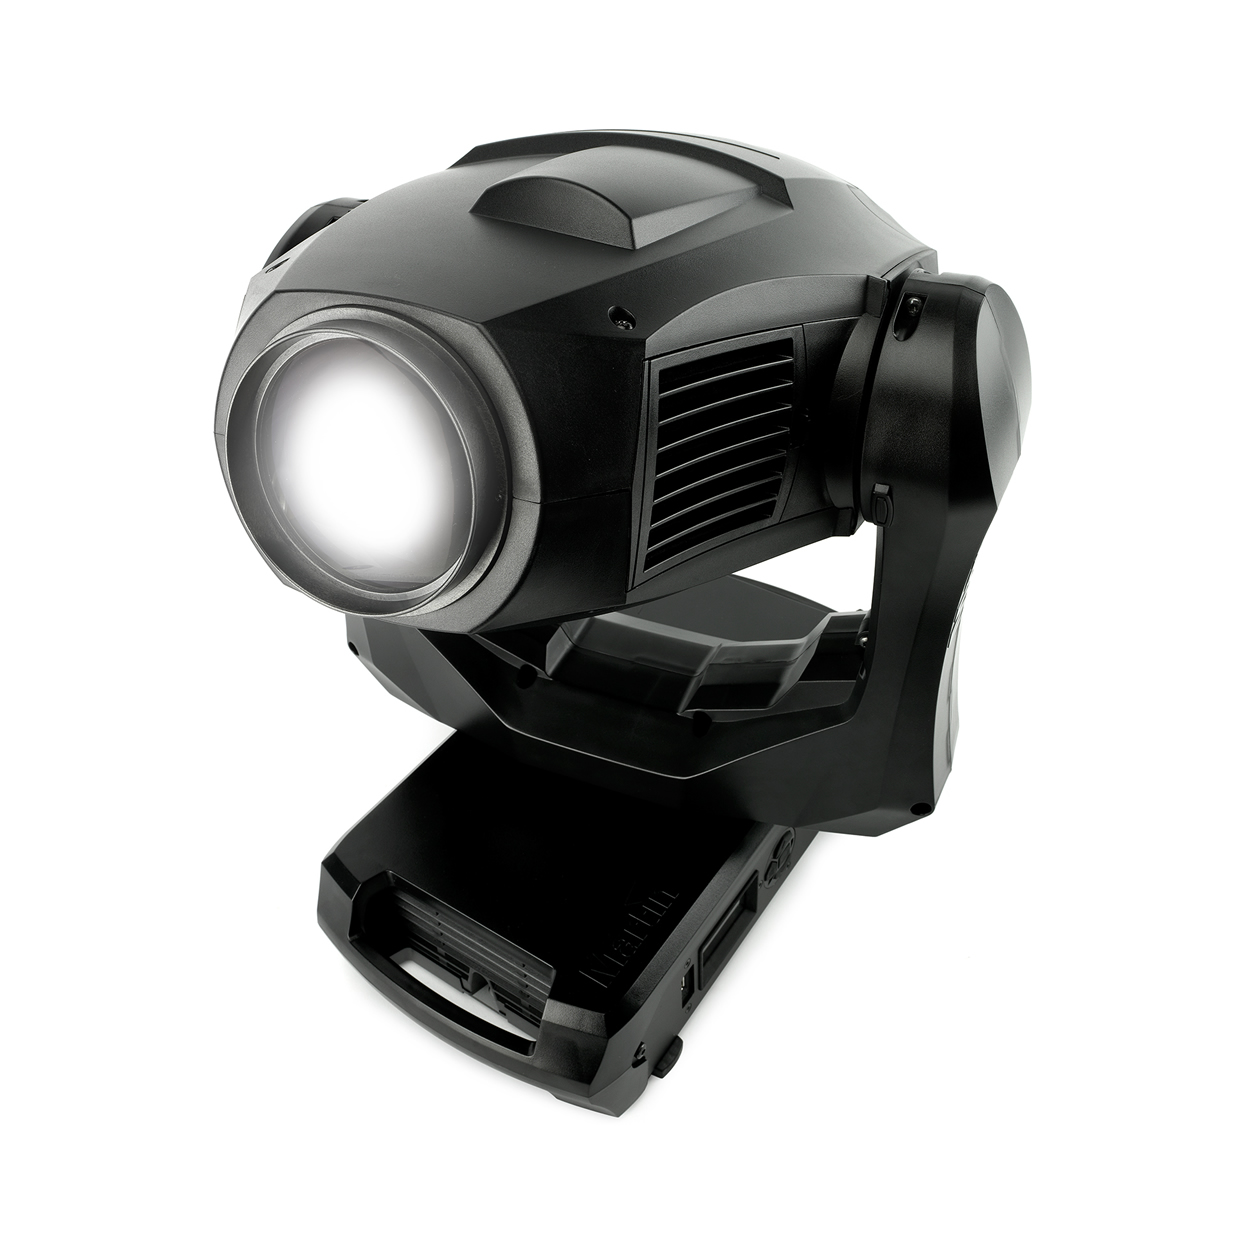 Outdoor Flood Lighting picture on martin mac quantum profile with Outdoor Flood Lighting, Outdoor Lighting ideas 20c1a6e1c4552ca999c78d725e6b4a1b